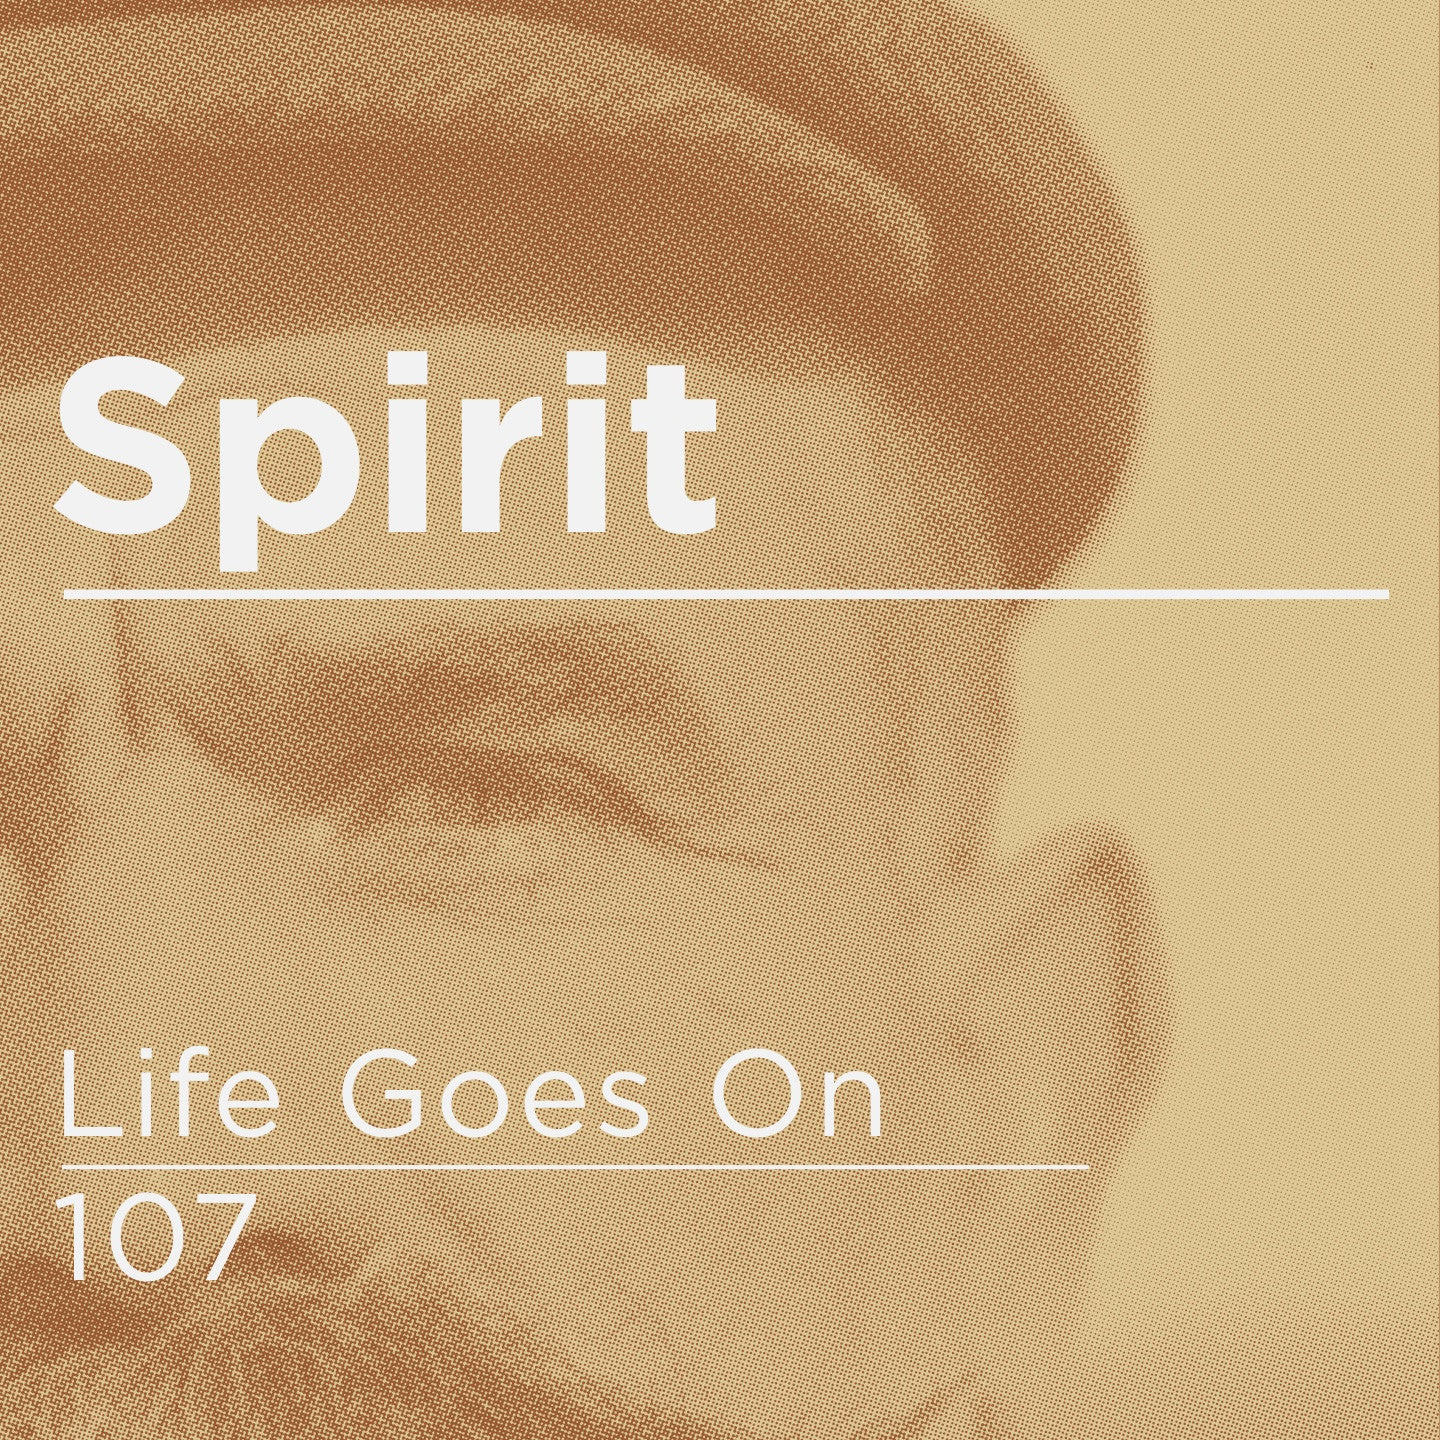 Spirit - Life Goes On / 107 - Unearthed Sounds